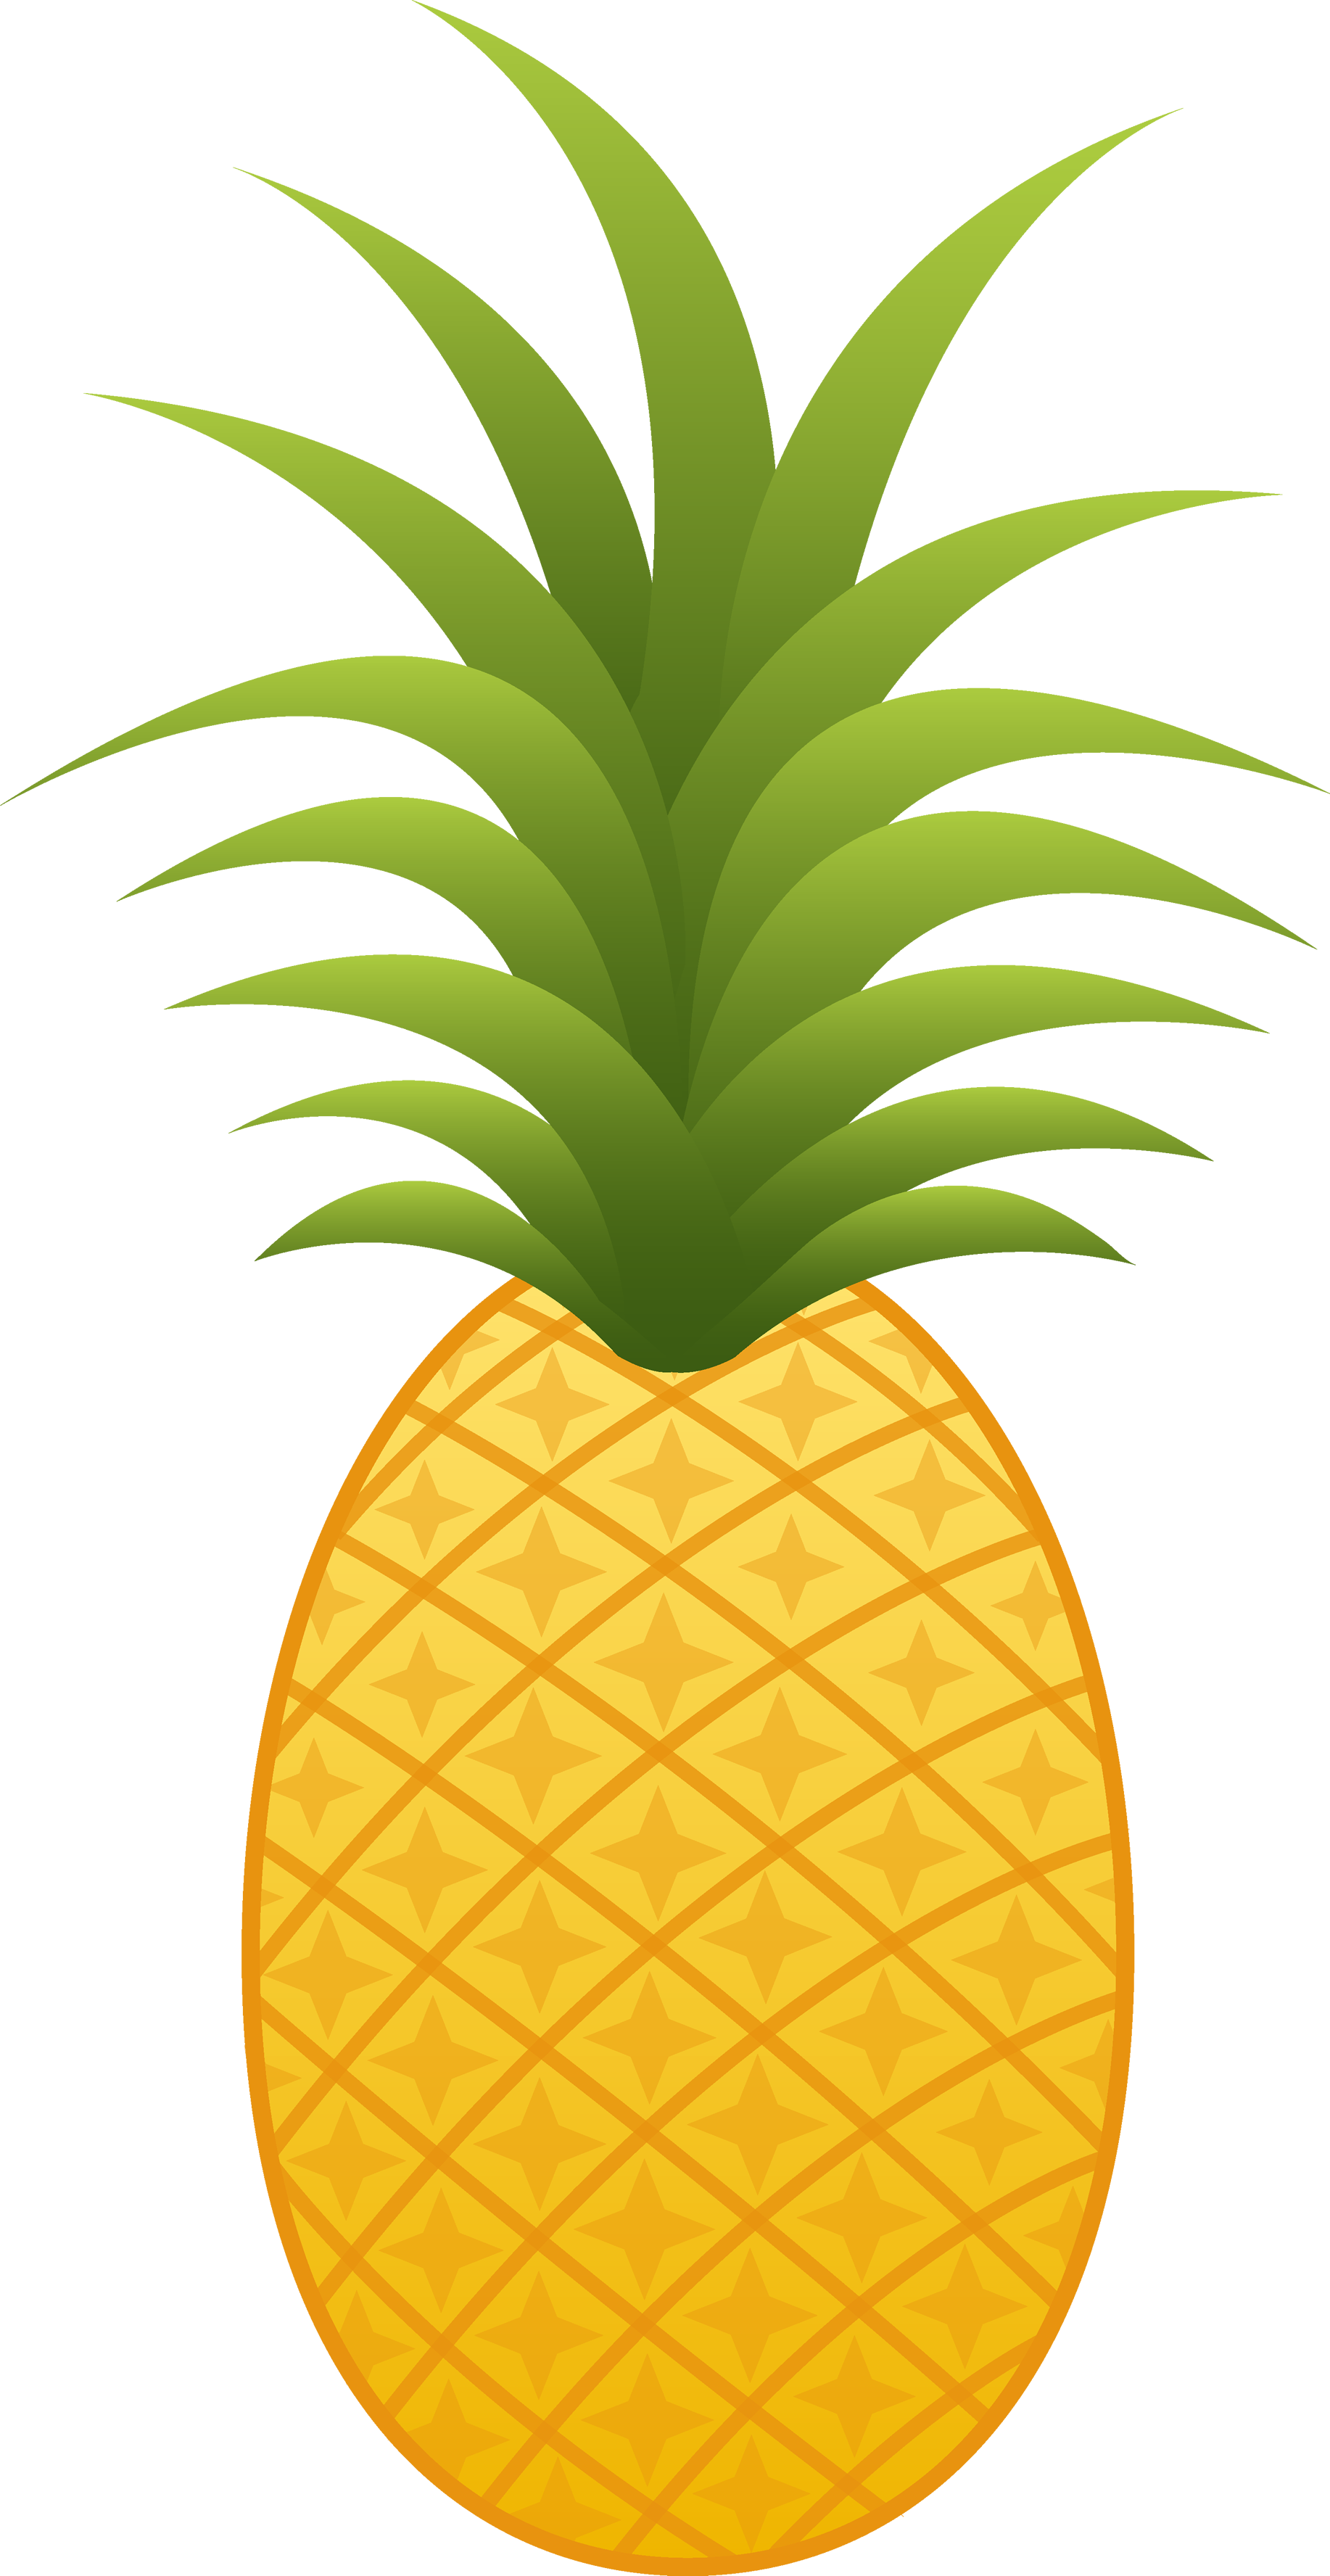 Pineapple cartoon png. Images free pictures download